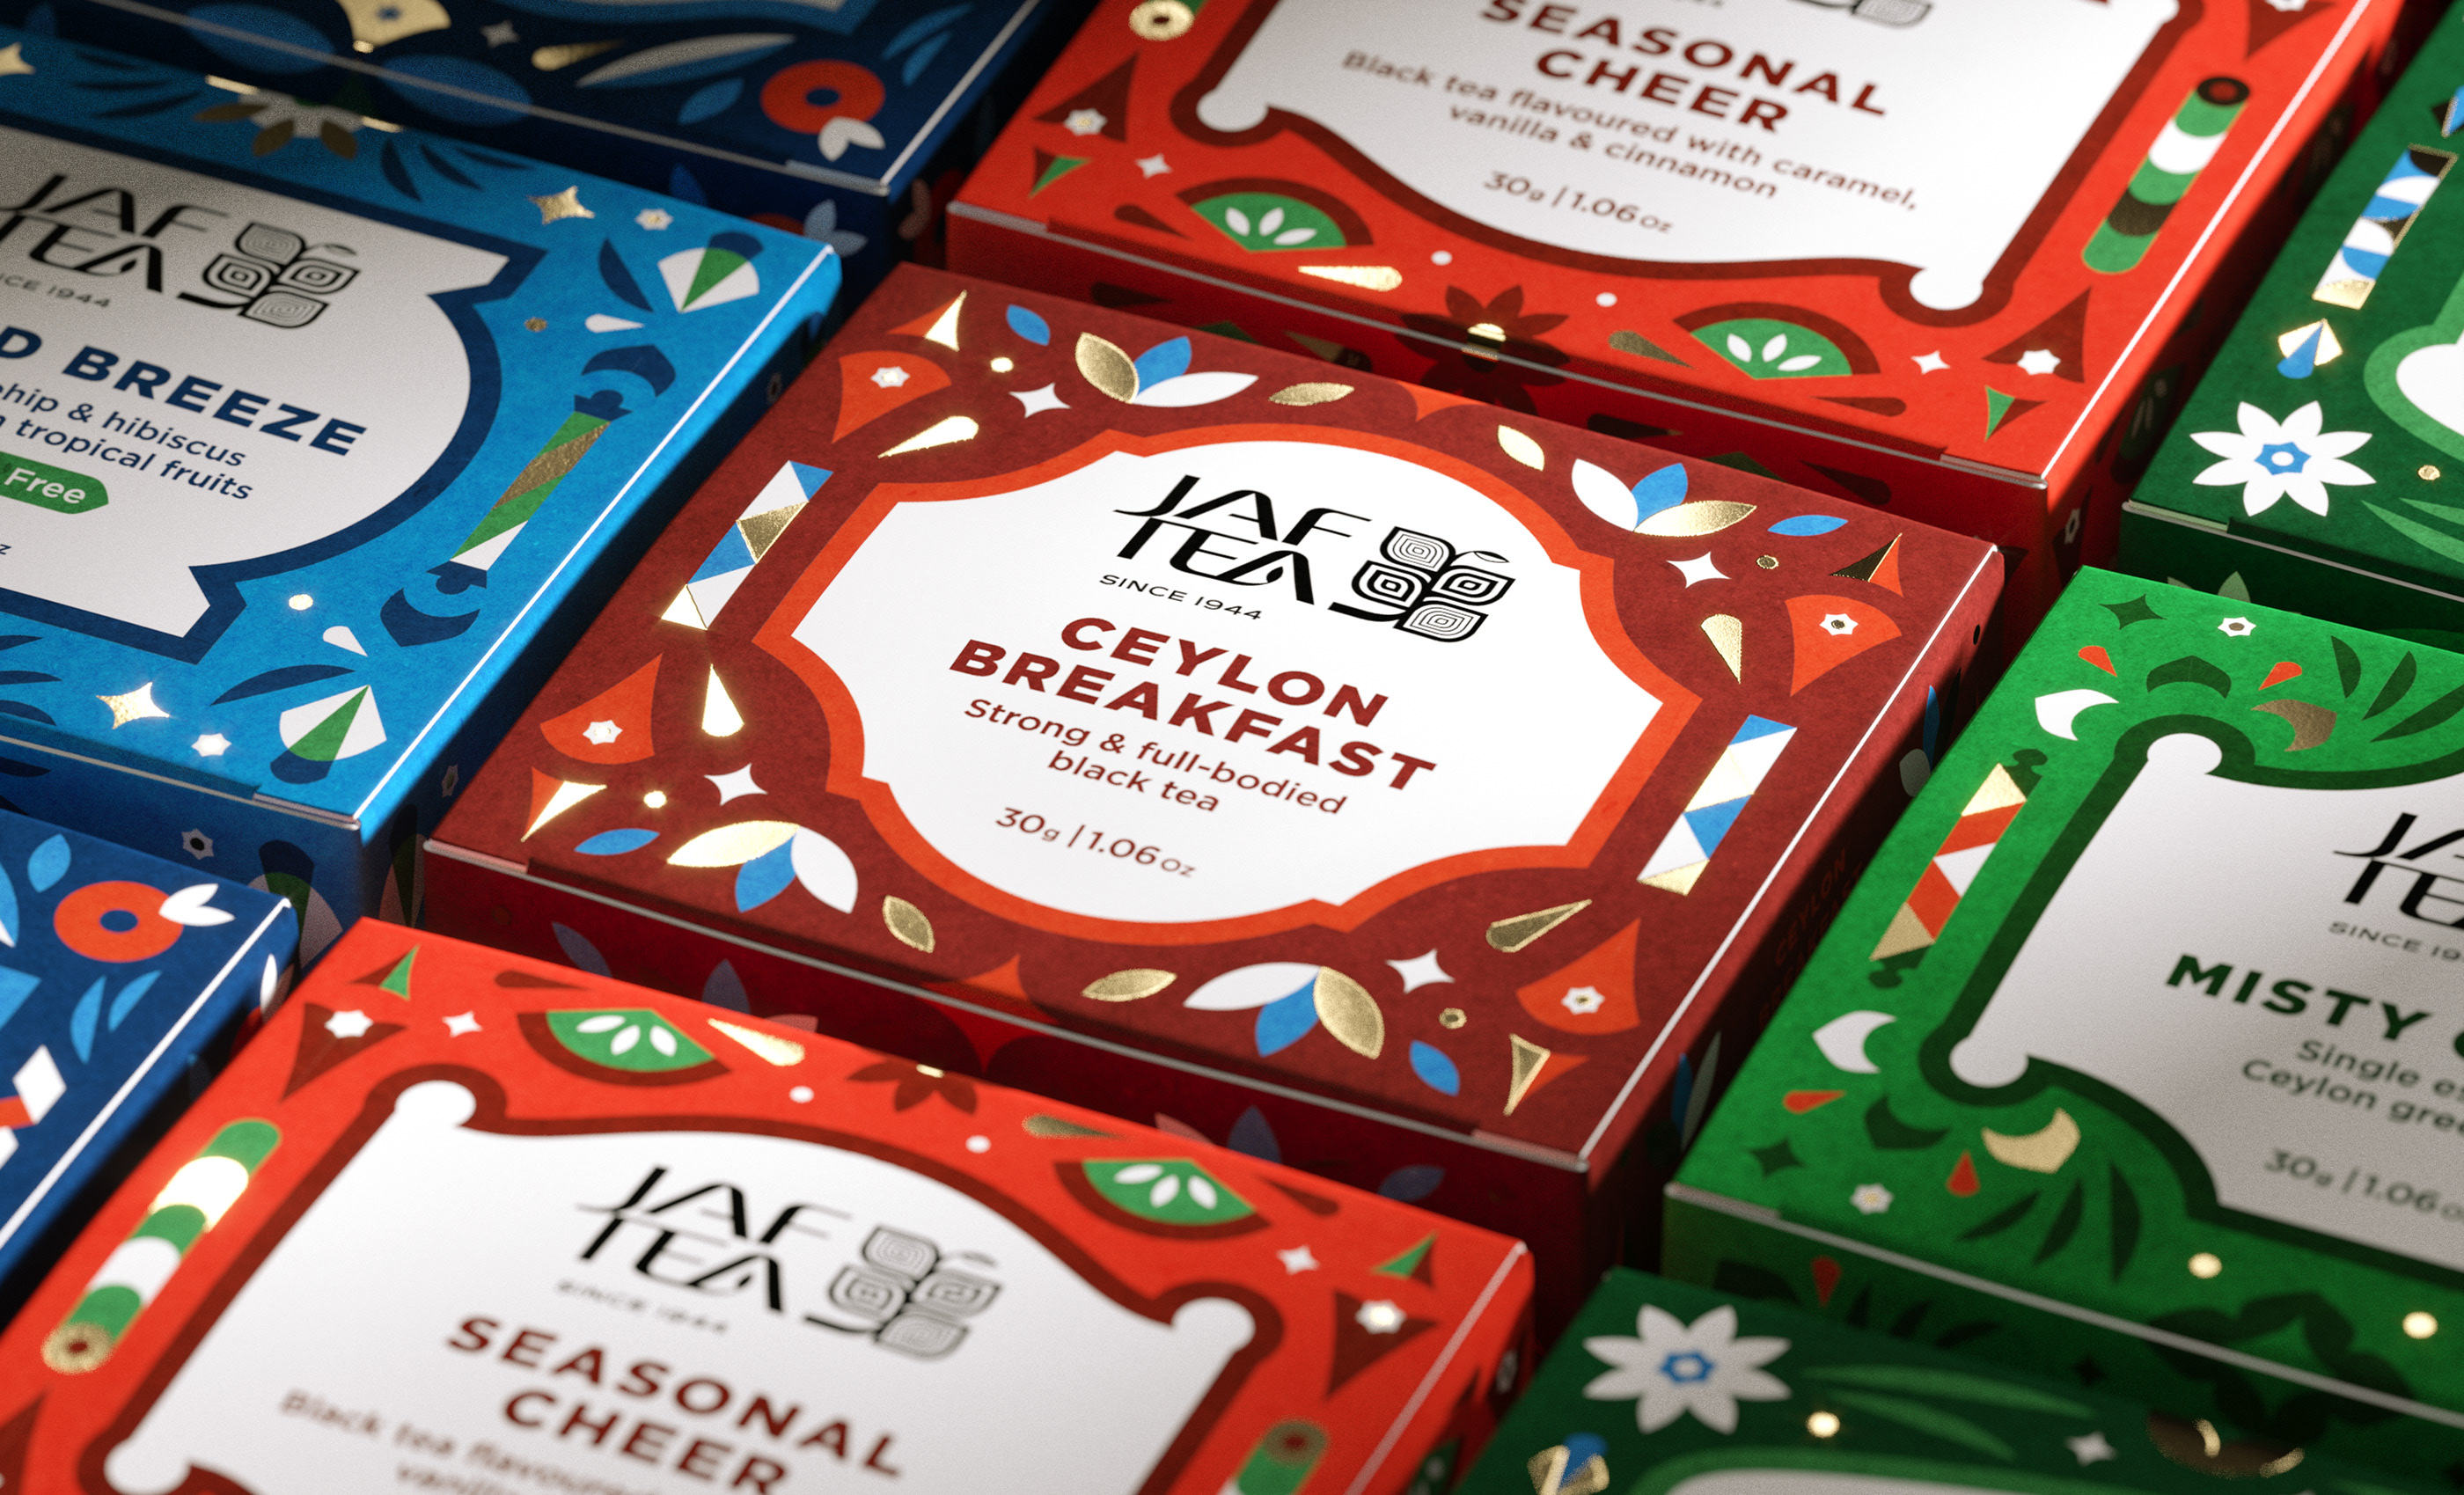 Season's Greetings Gift Tea Packaging for JAFTEA Brand